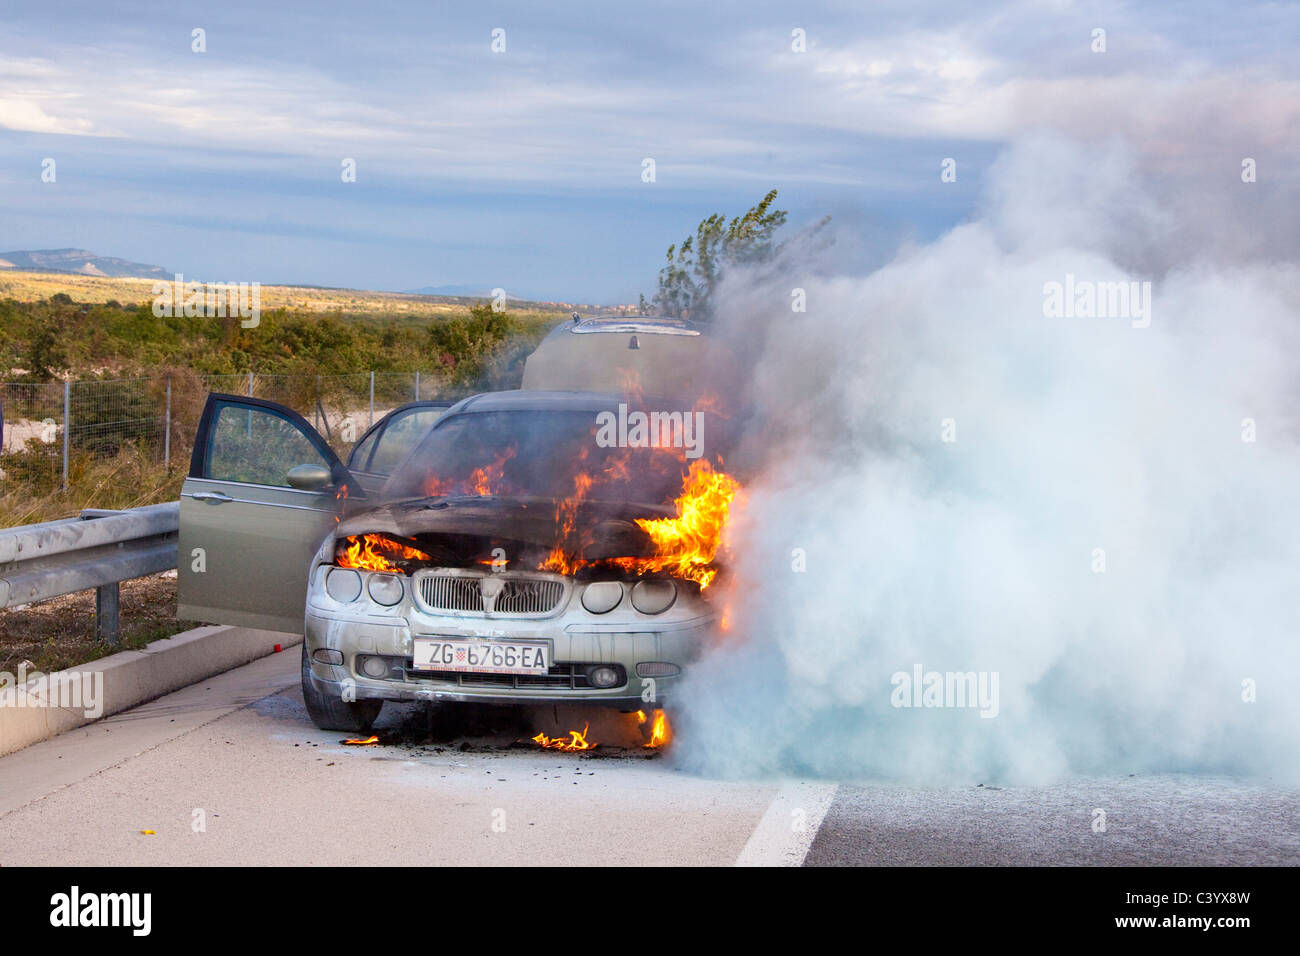 Croatia, Europe, accident, casualty, car, automobile, burn, smoke, street - Stock Image